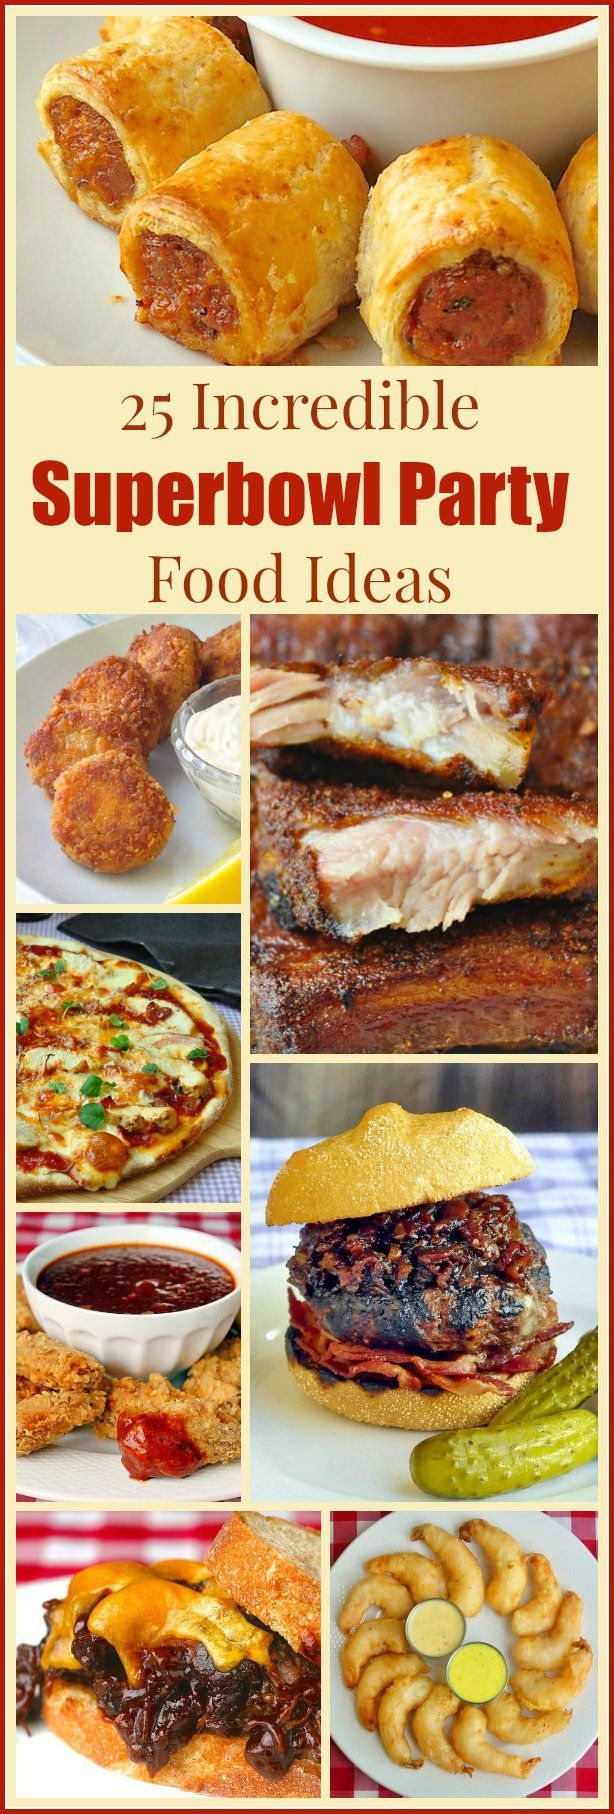 Rock Recipes Best Super Bowl Party Food Ideas. 25 of our best recipe ideas to make your Super Bowl Party a sure winner no matter who you're rooting for.